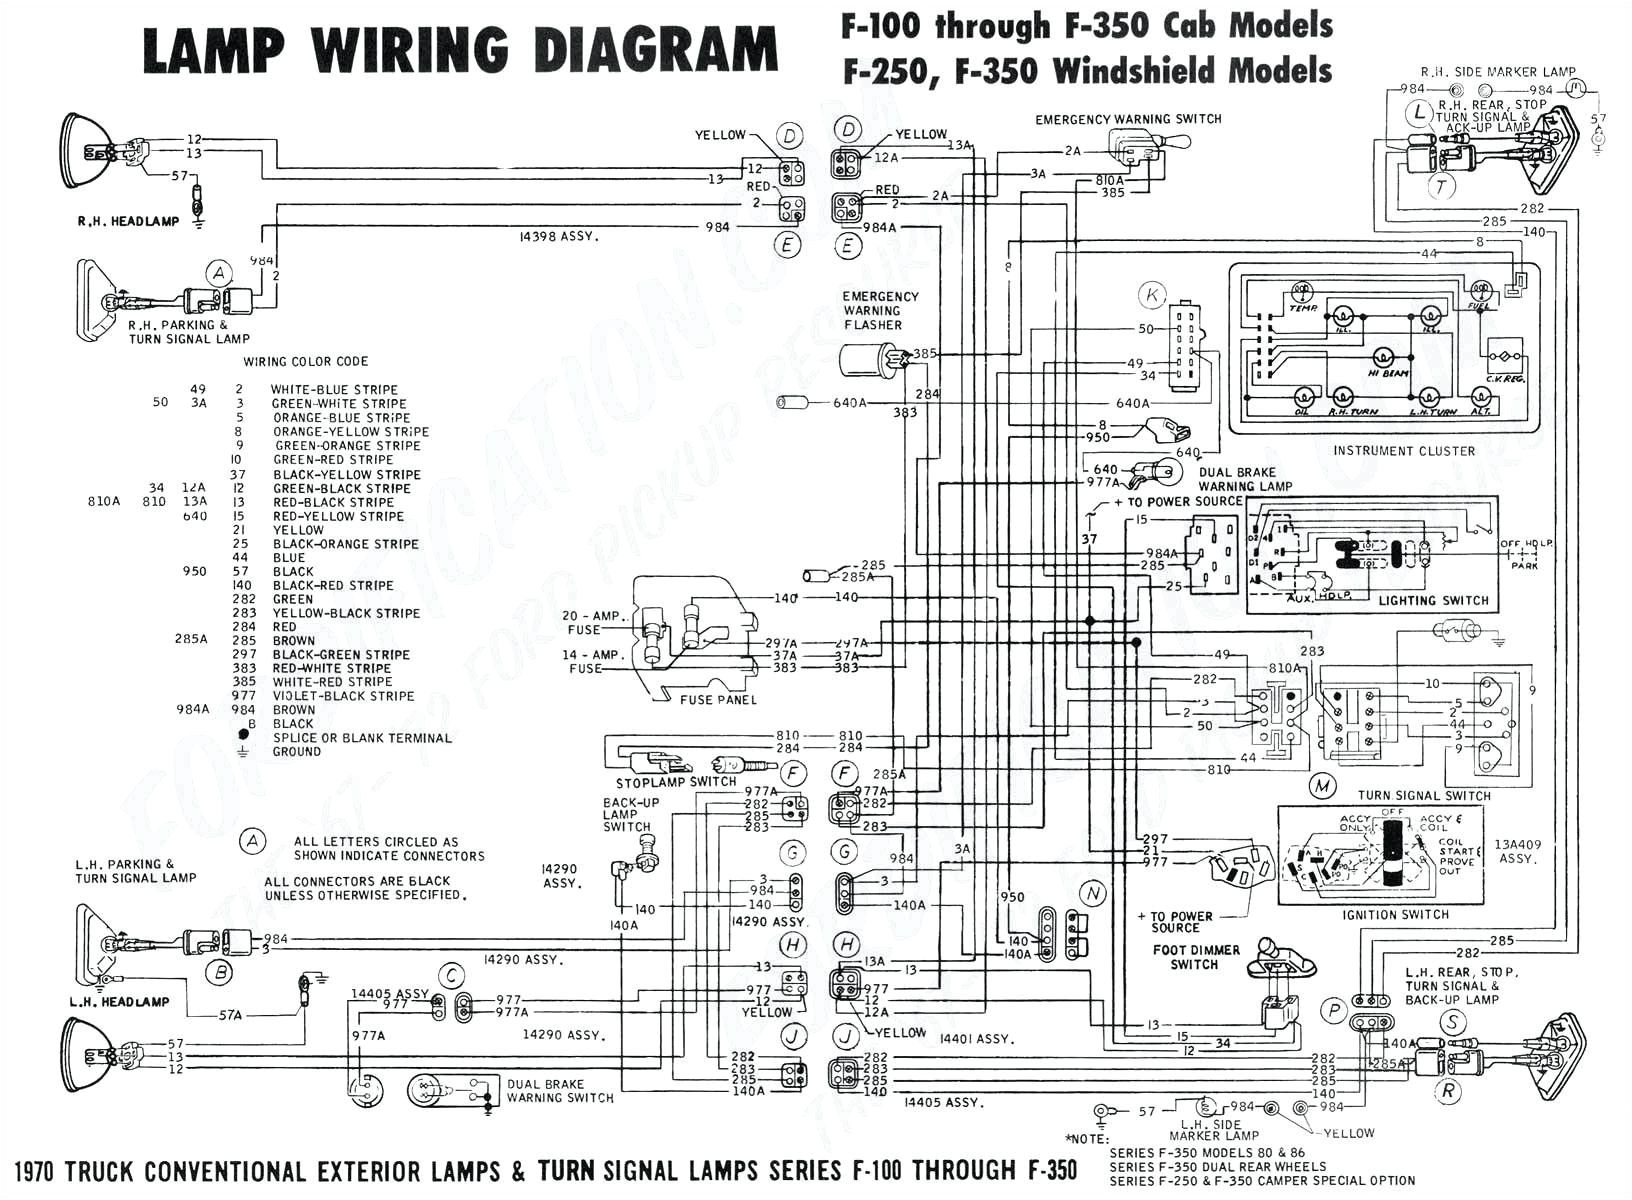 Irrigation Pump Start Relay Wiring Diagram 2004 Gto Fuse Box Location Wiring Diagram Number